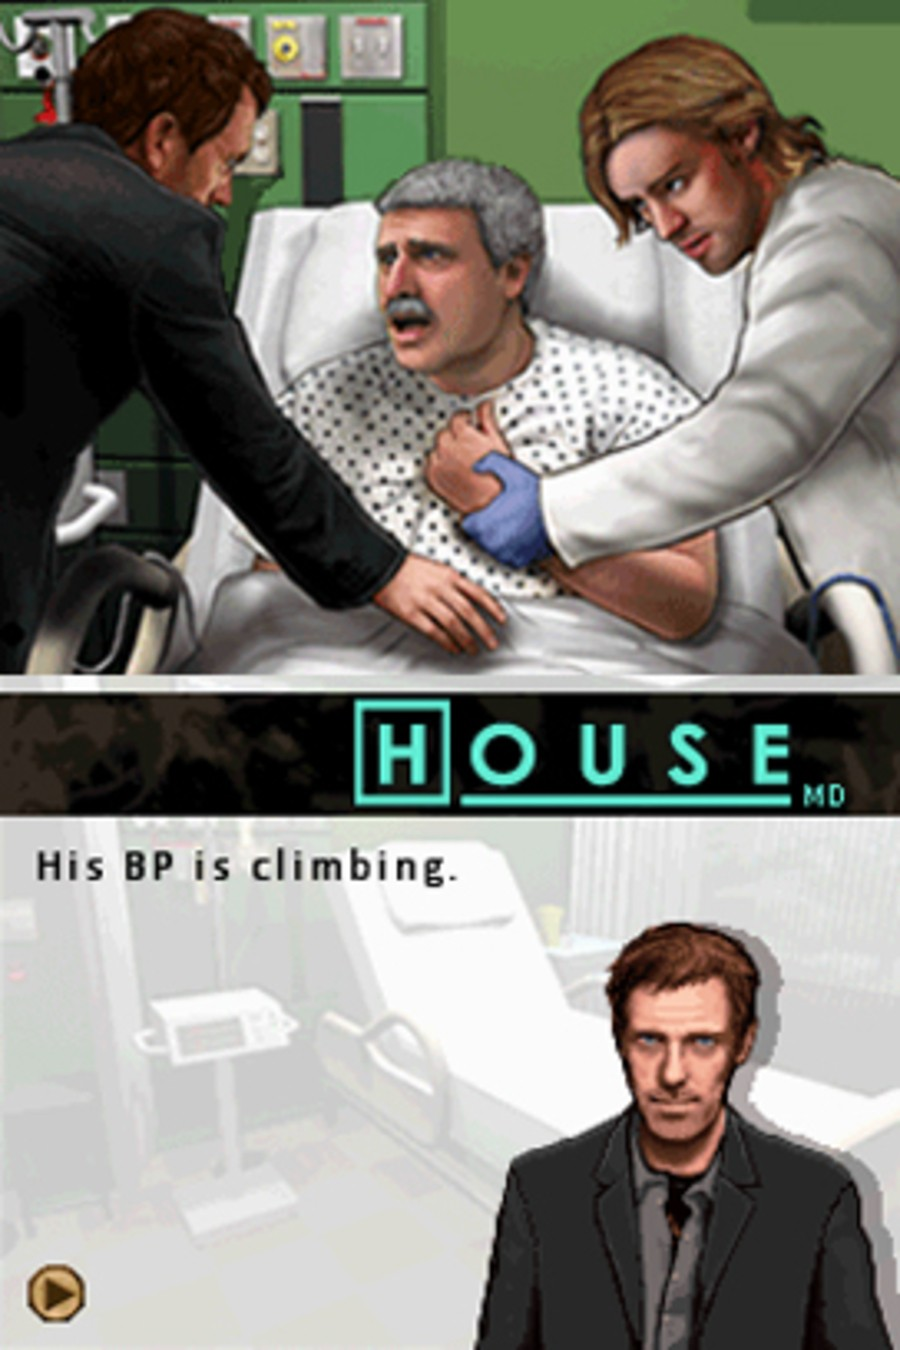 House, M.D. - Episode 1: Globetrotting Screenshot